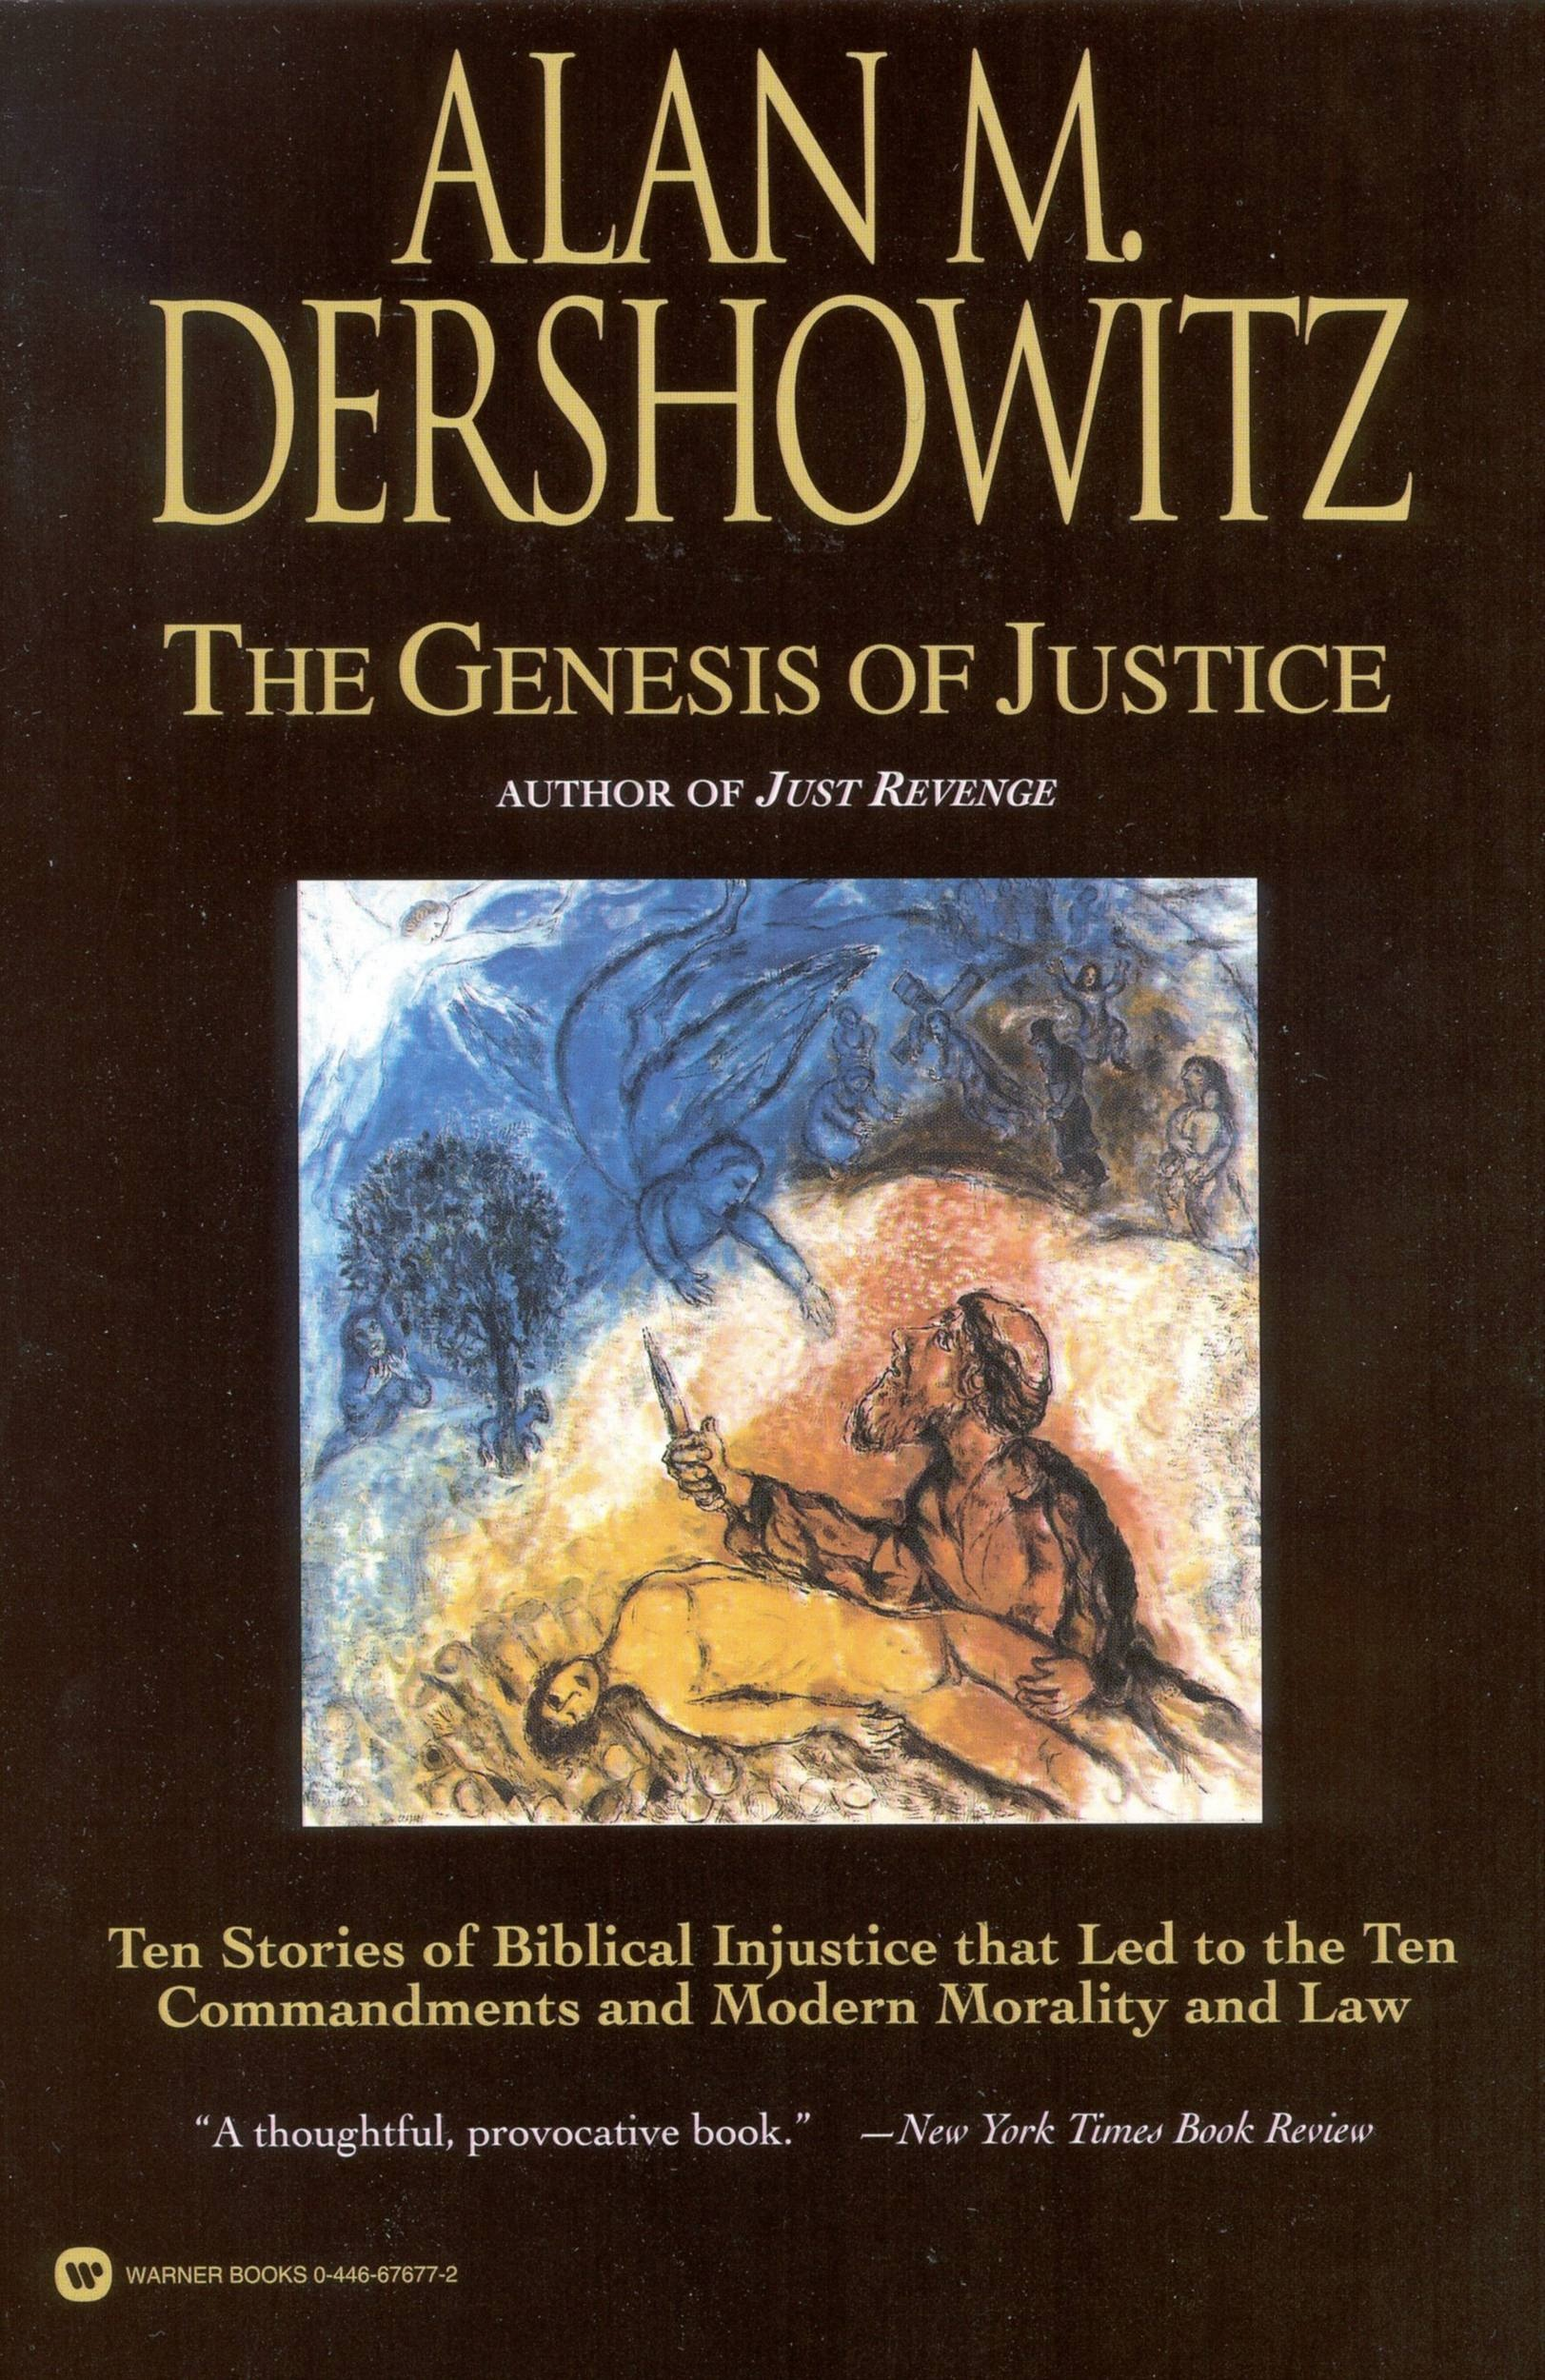 Genesis of Justice, The